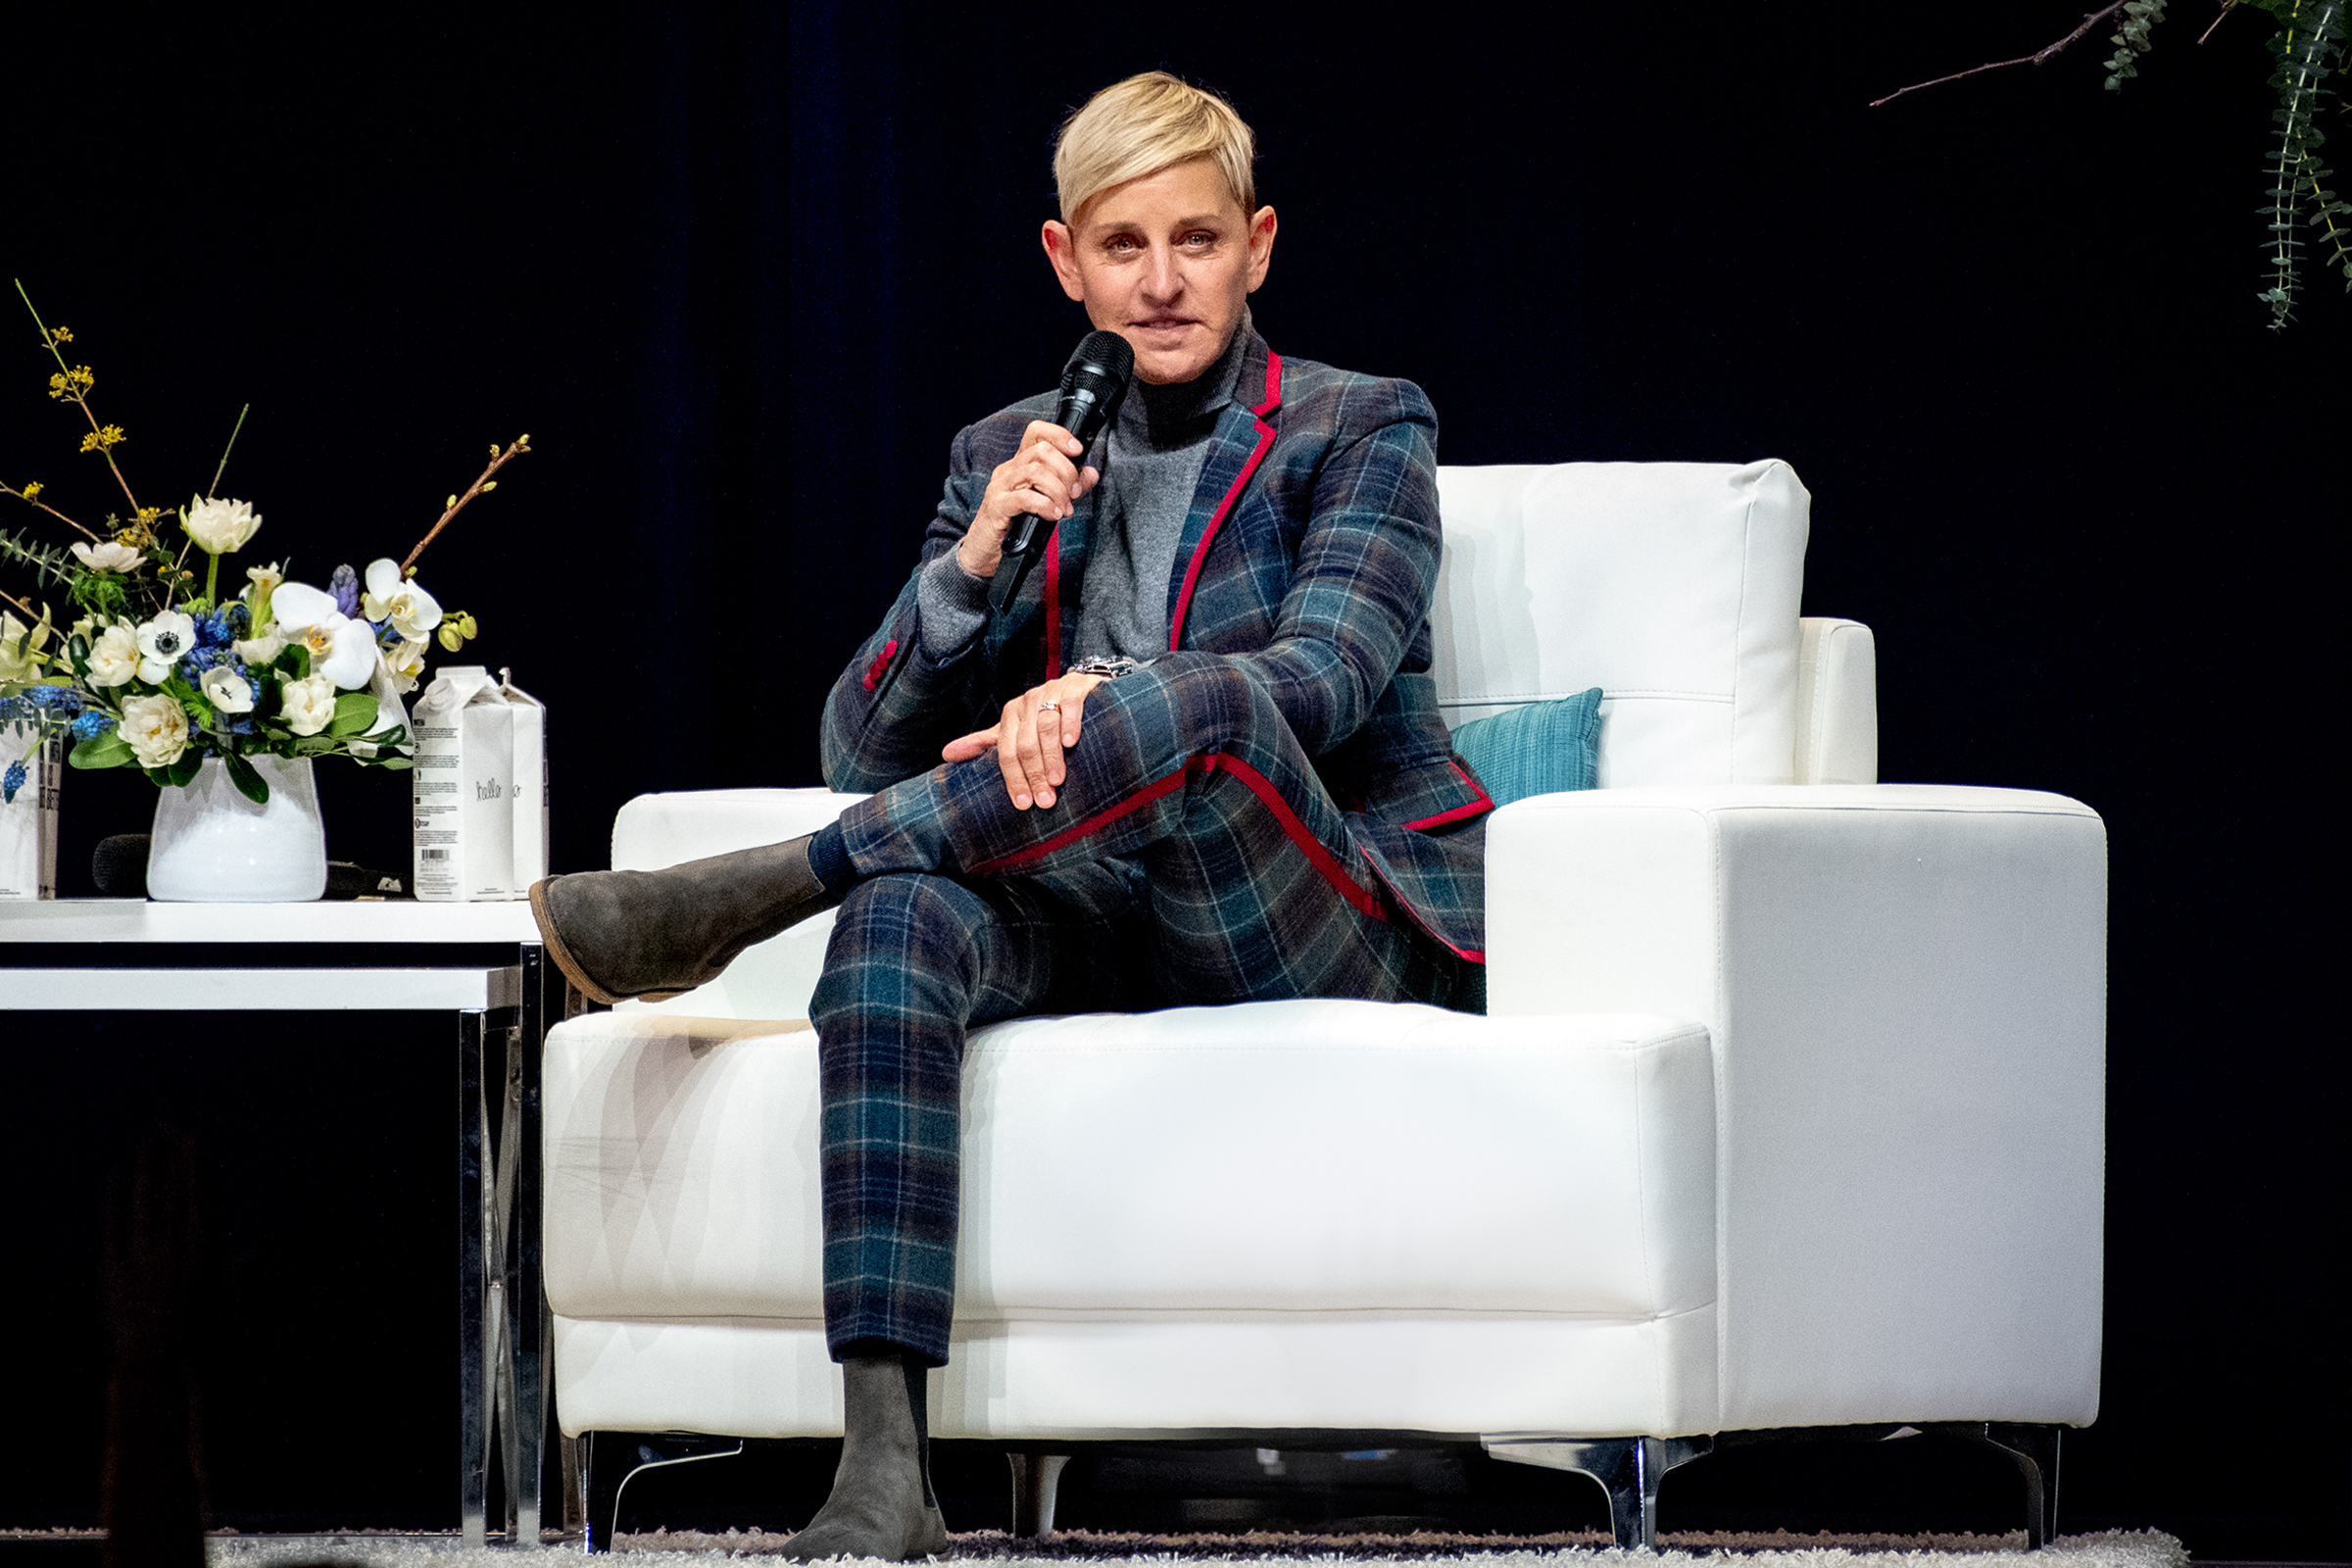 Ellen DeGeneres, a white woman with short blond hair, sits on stage and holds a microphone.